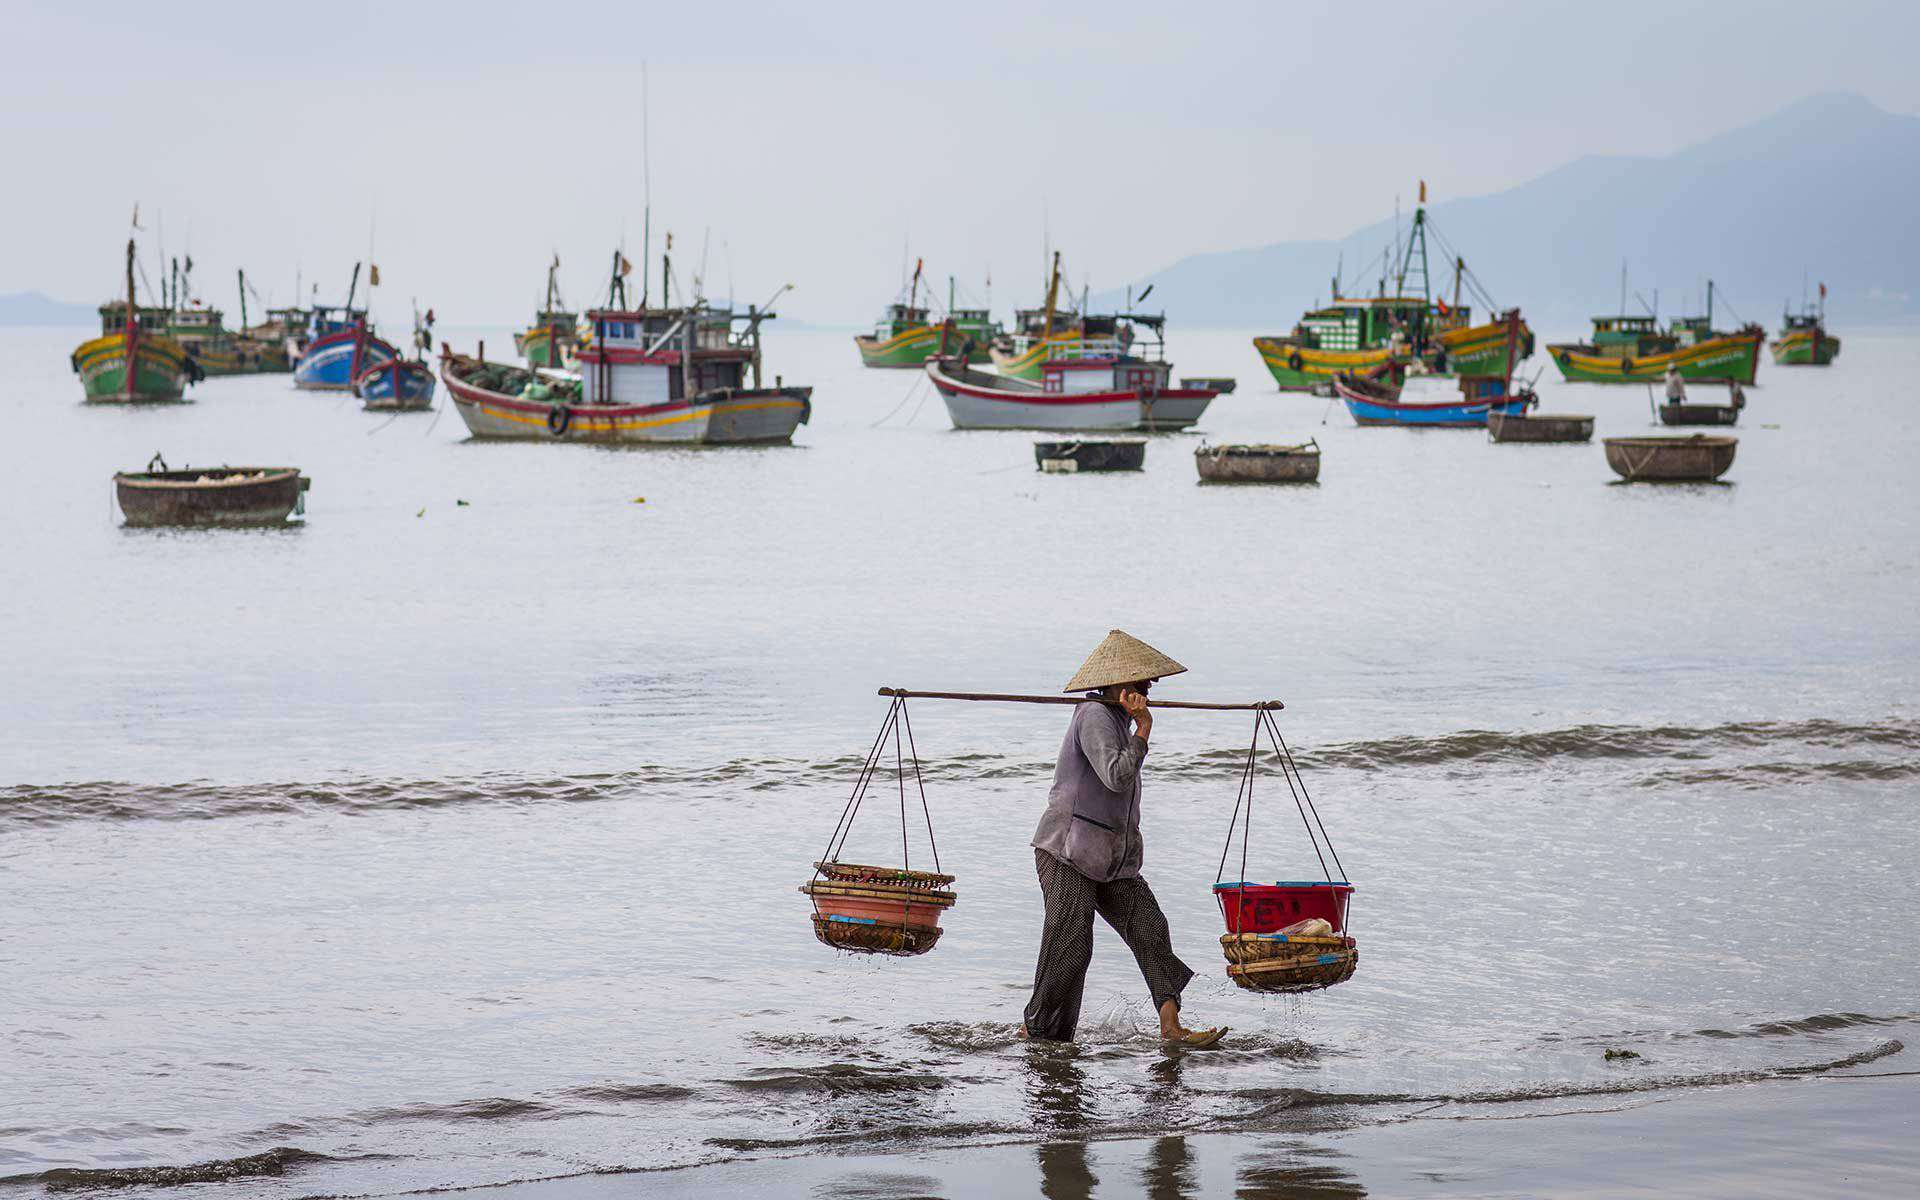 A beach vacation in Quy Nhon